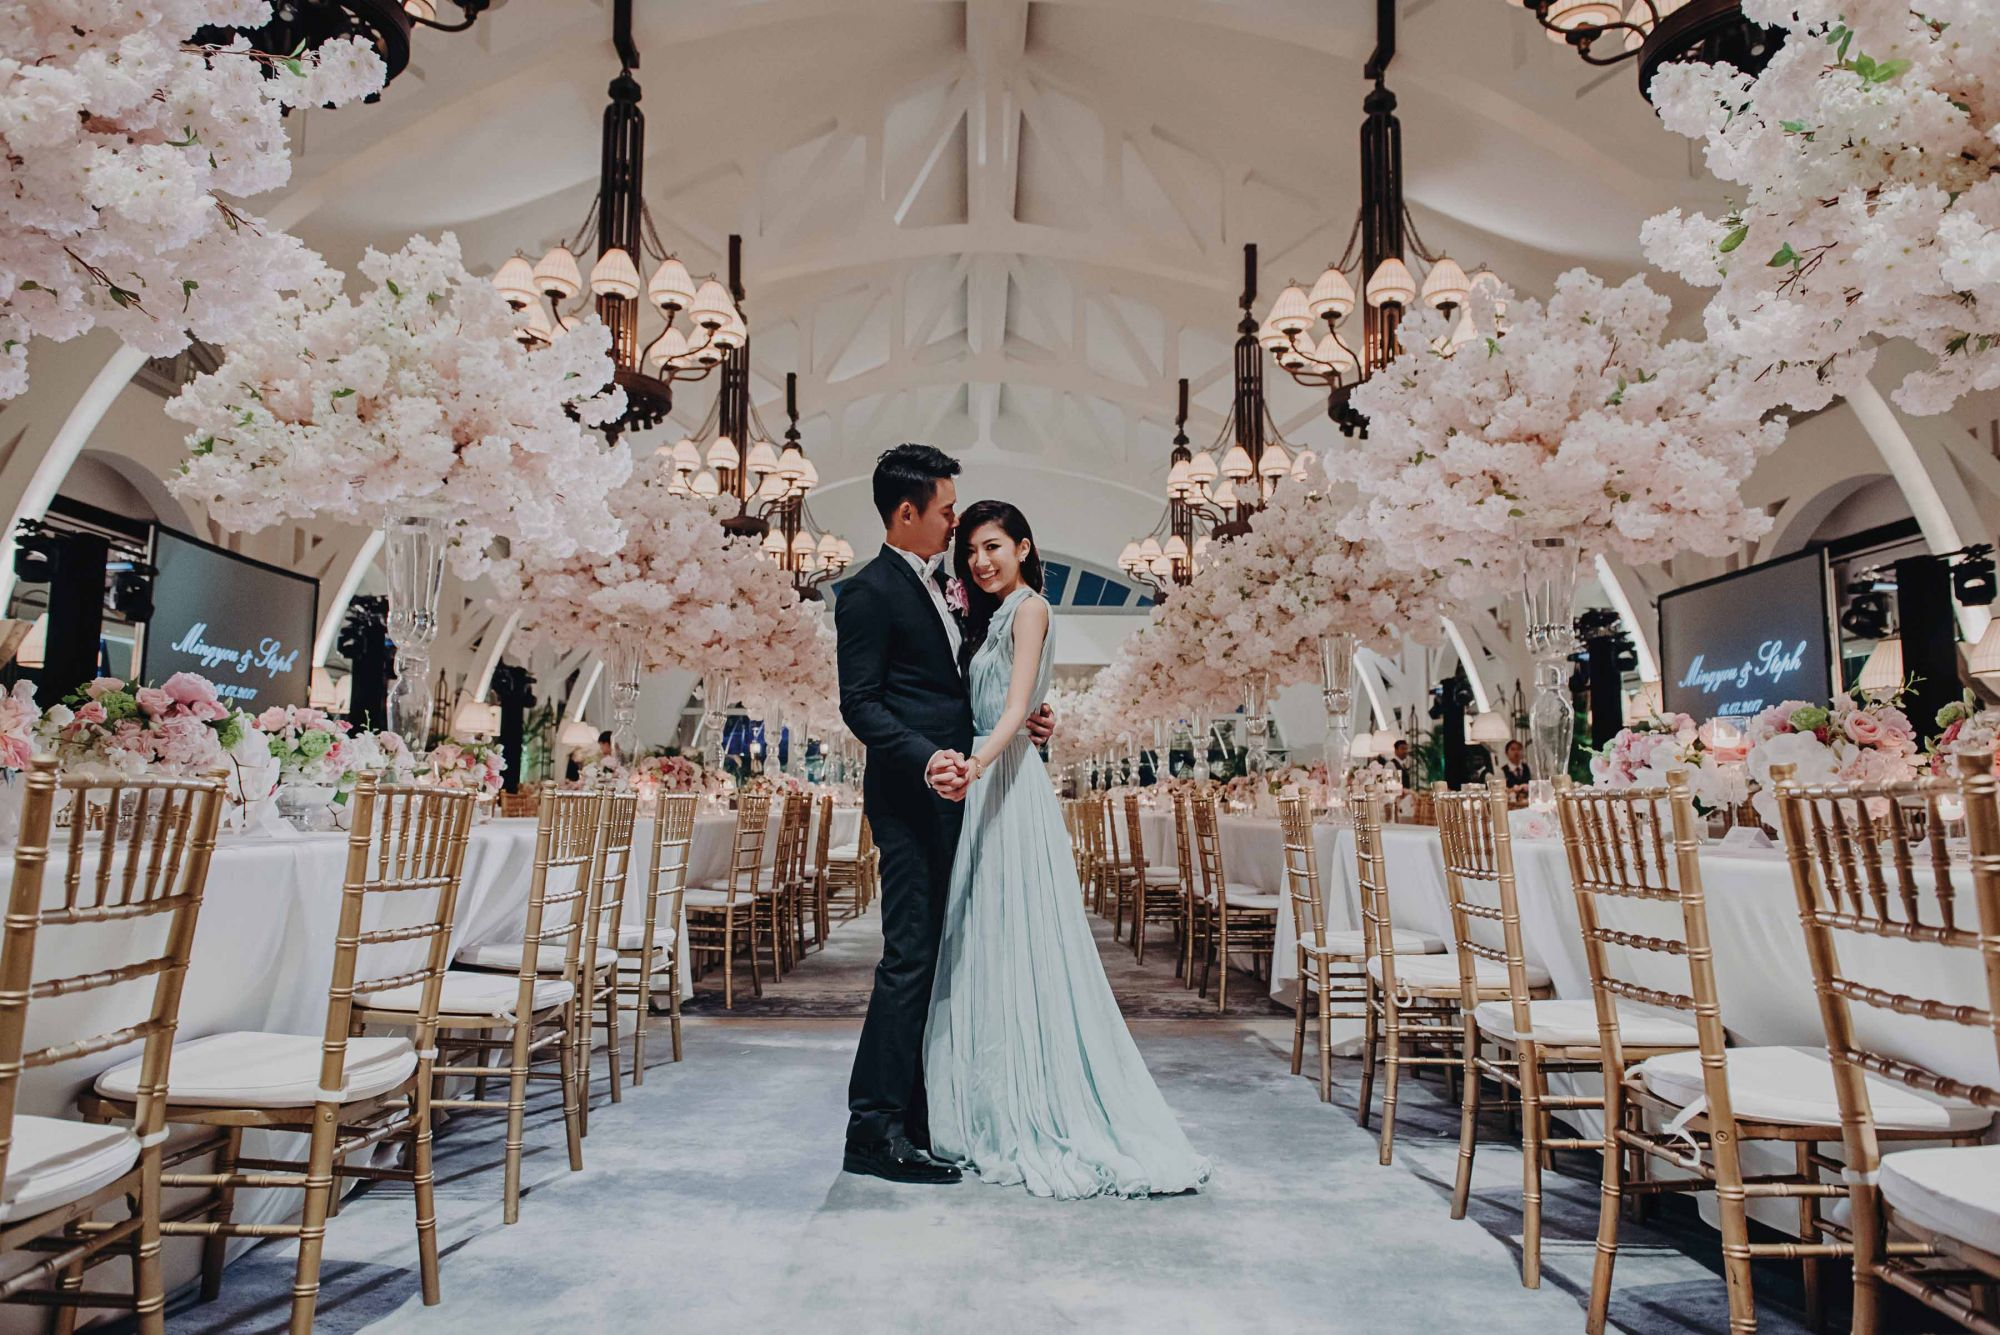 Perfectly Romantic: Stephanie Yap and Cheo Mingyou